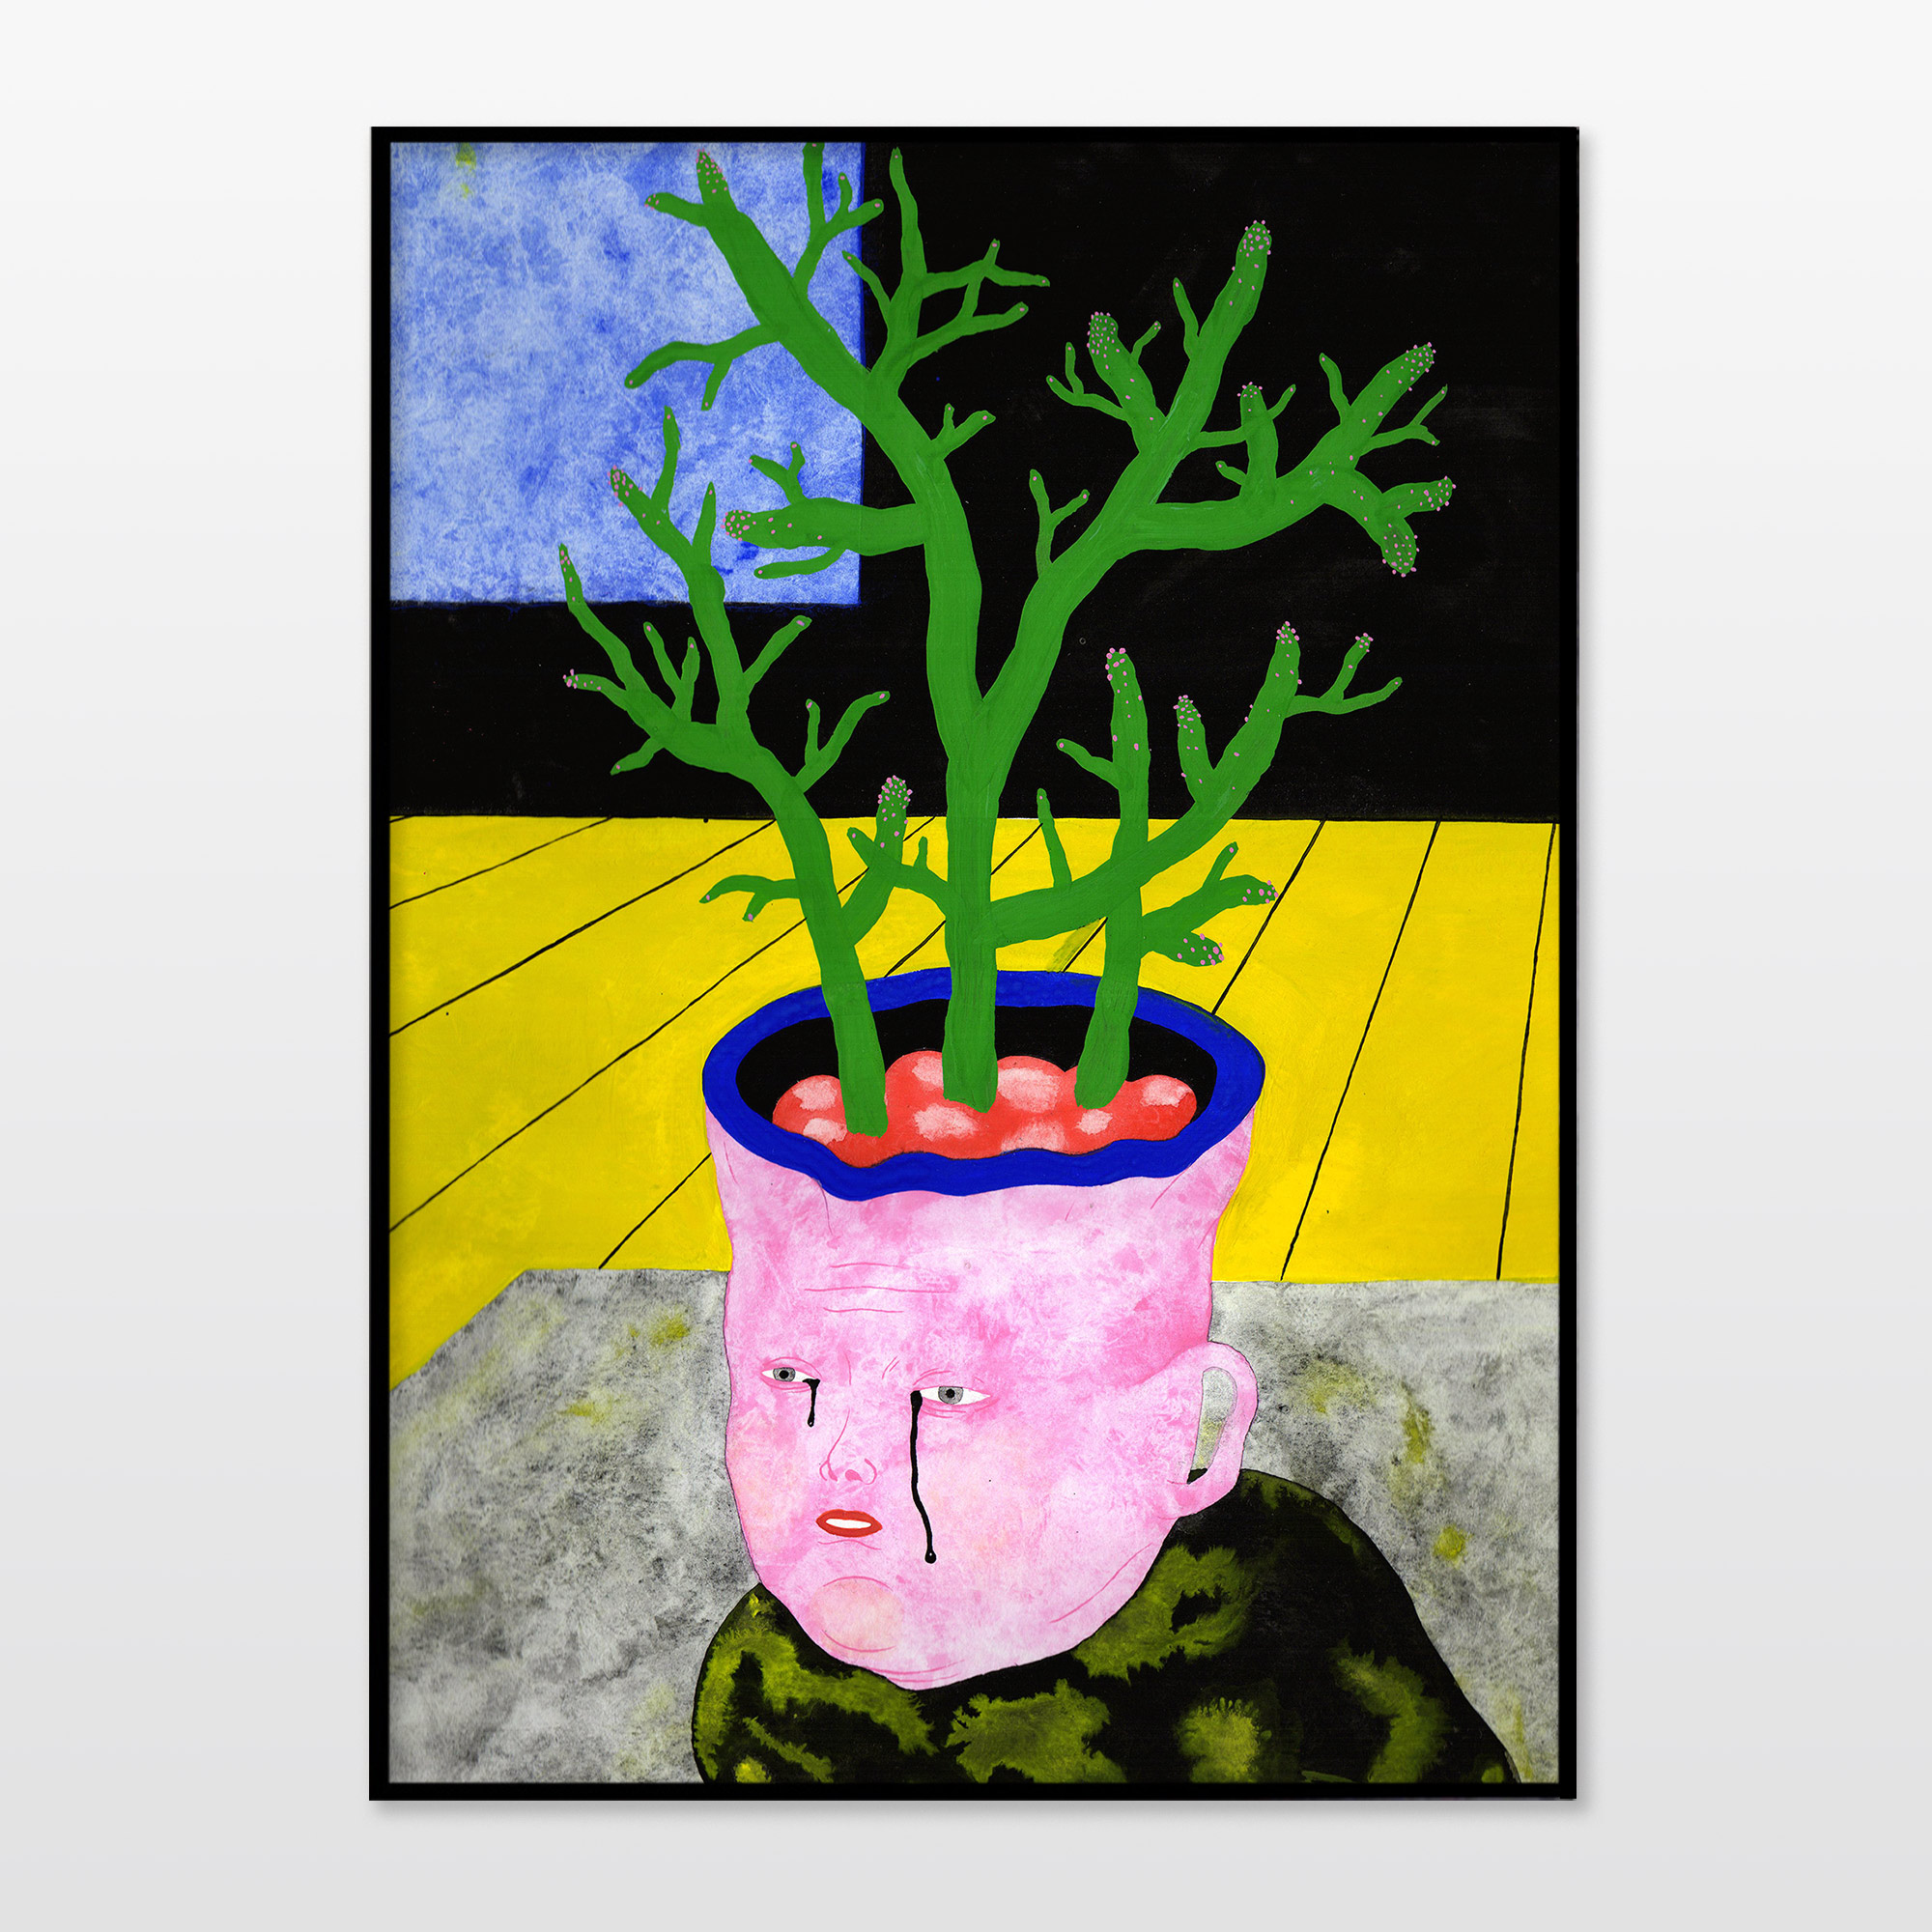 posters-prints, giclee-print, colorful, figurative, portraiture, surrealistic, botany, cartoons, humor, people, blue, grey, pink, yellow, ink, paper, amusing, contemporary-art, copenhagen, danish, decorative, design, faces, feminist, flowers, interior, interior-design, modern, modern-art, nordic, plants, posters, prints, scandinavien, Buy original high quality art. Paintings, drawings, limited edition prints & posters by talented artists.